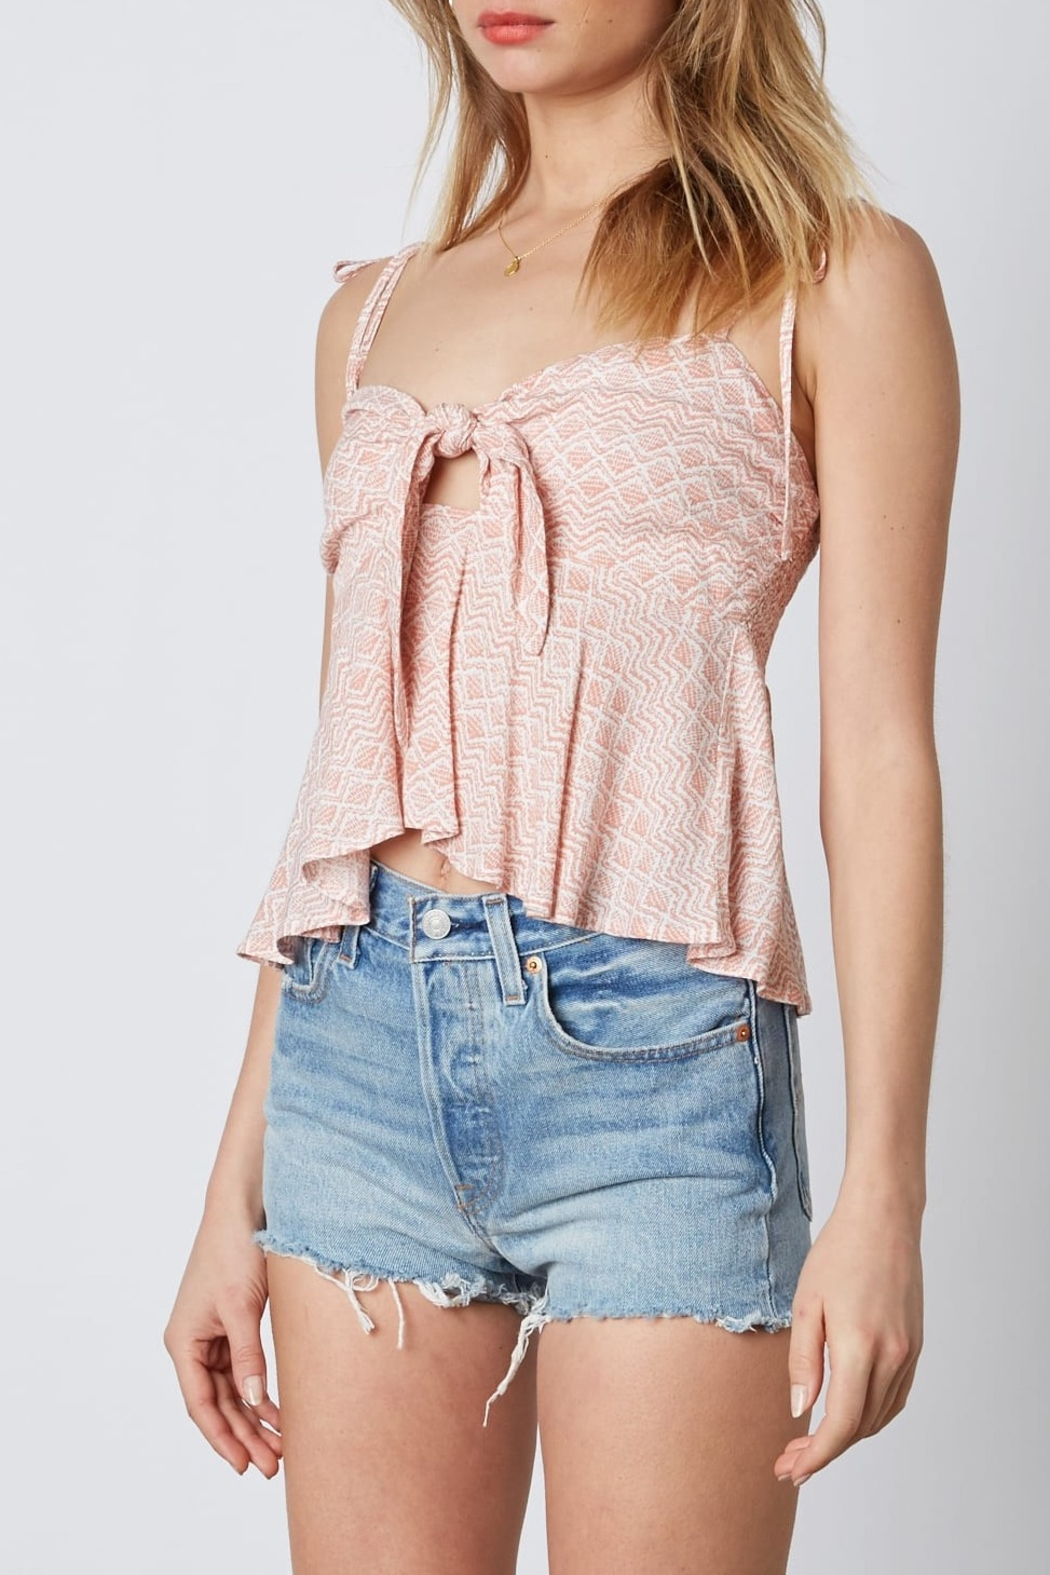 Cotton Candy LA Knot Front Top - Side Cropped Image